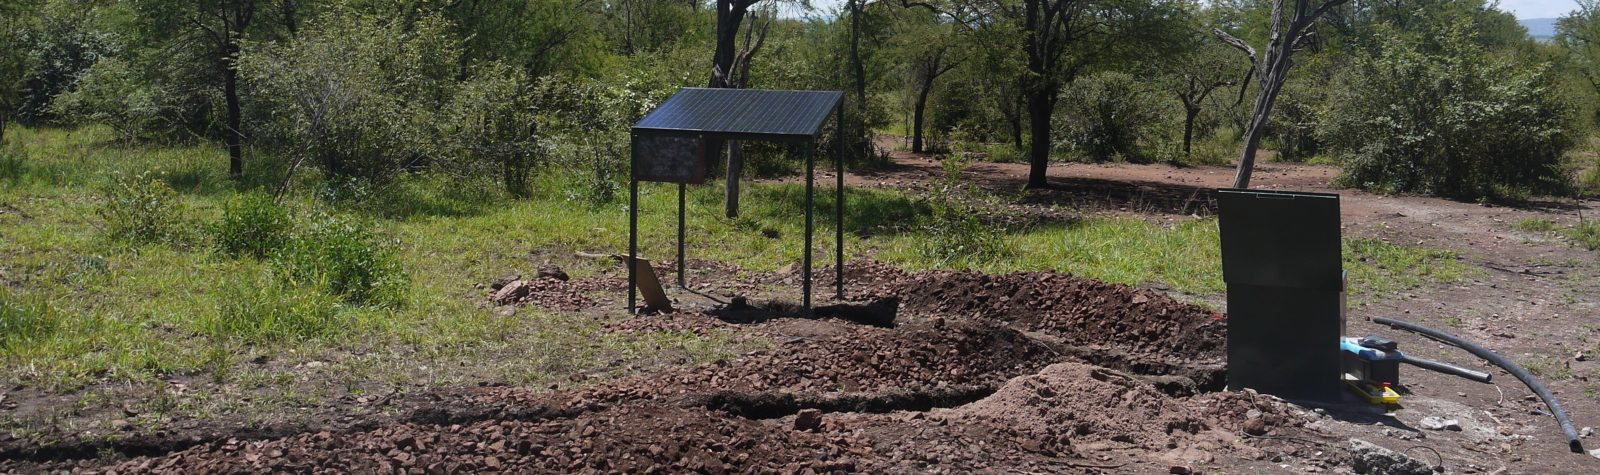 Image for submersible pumping systems for drinking water for animals Grumeti Reserves in Tanzania